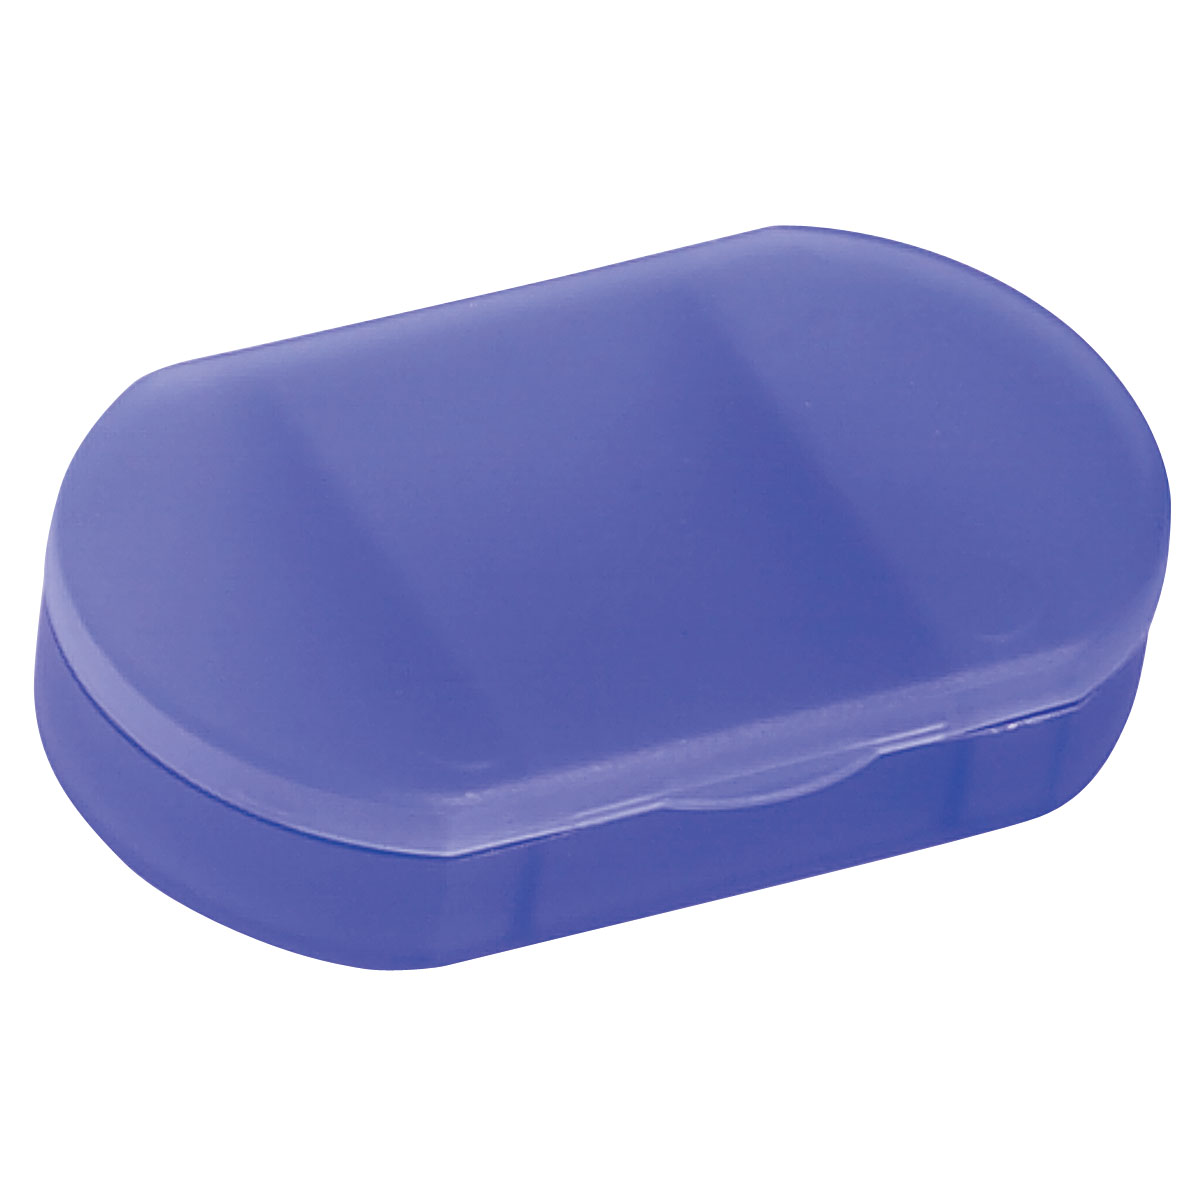 #CM 7531 Oval Shape Pill Holder